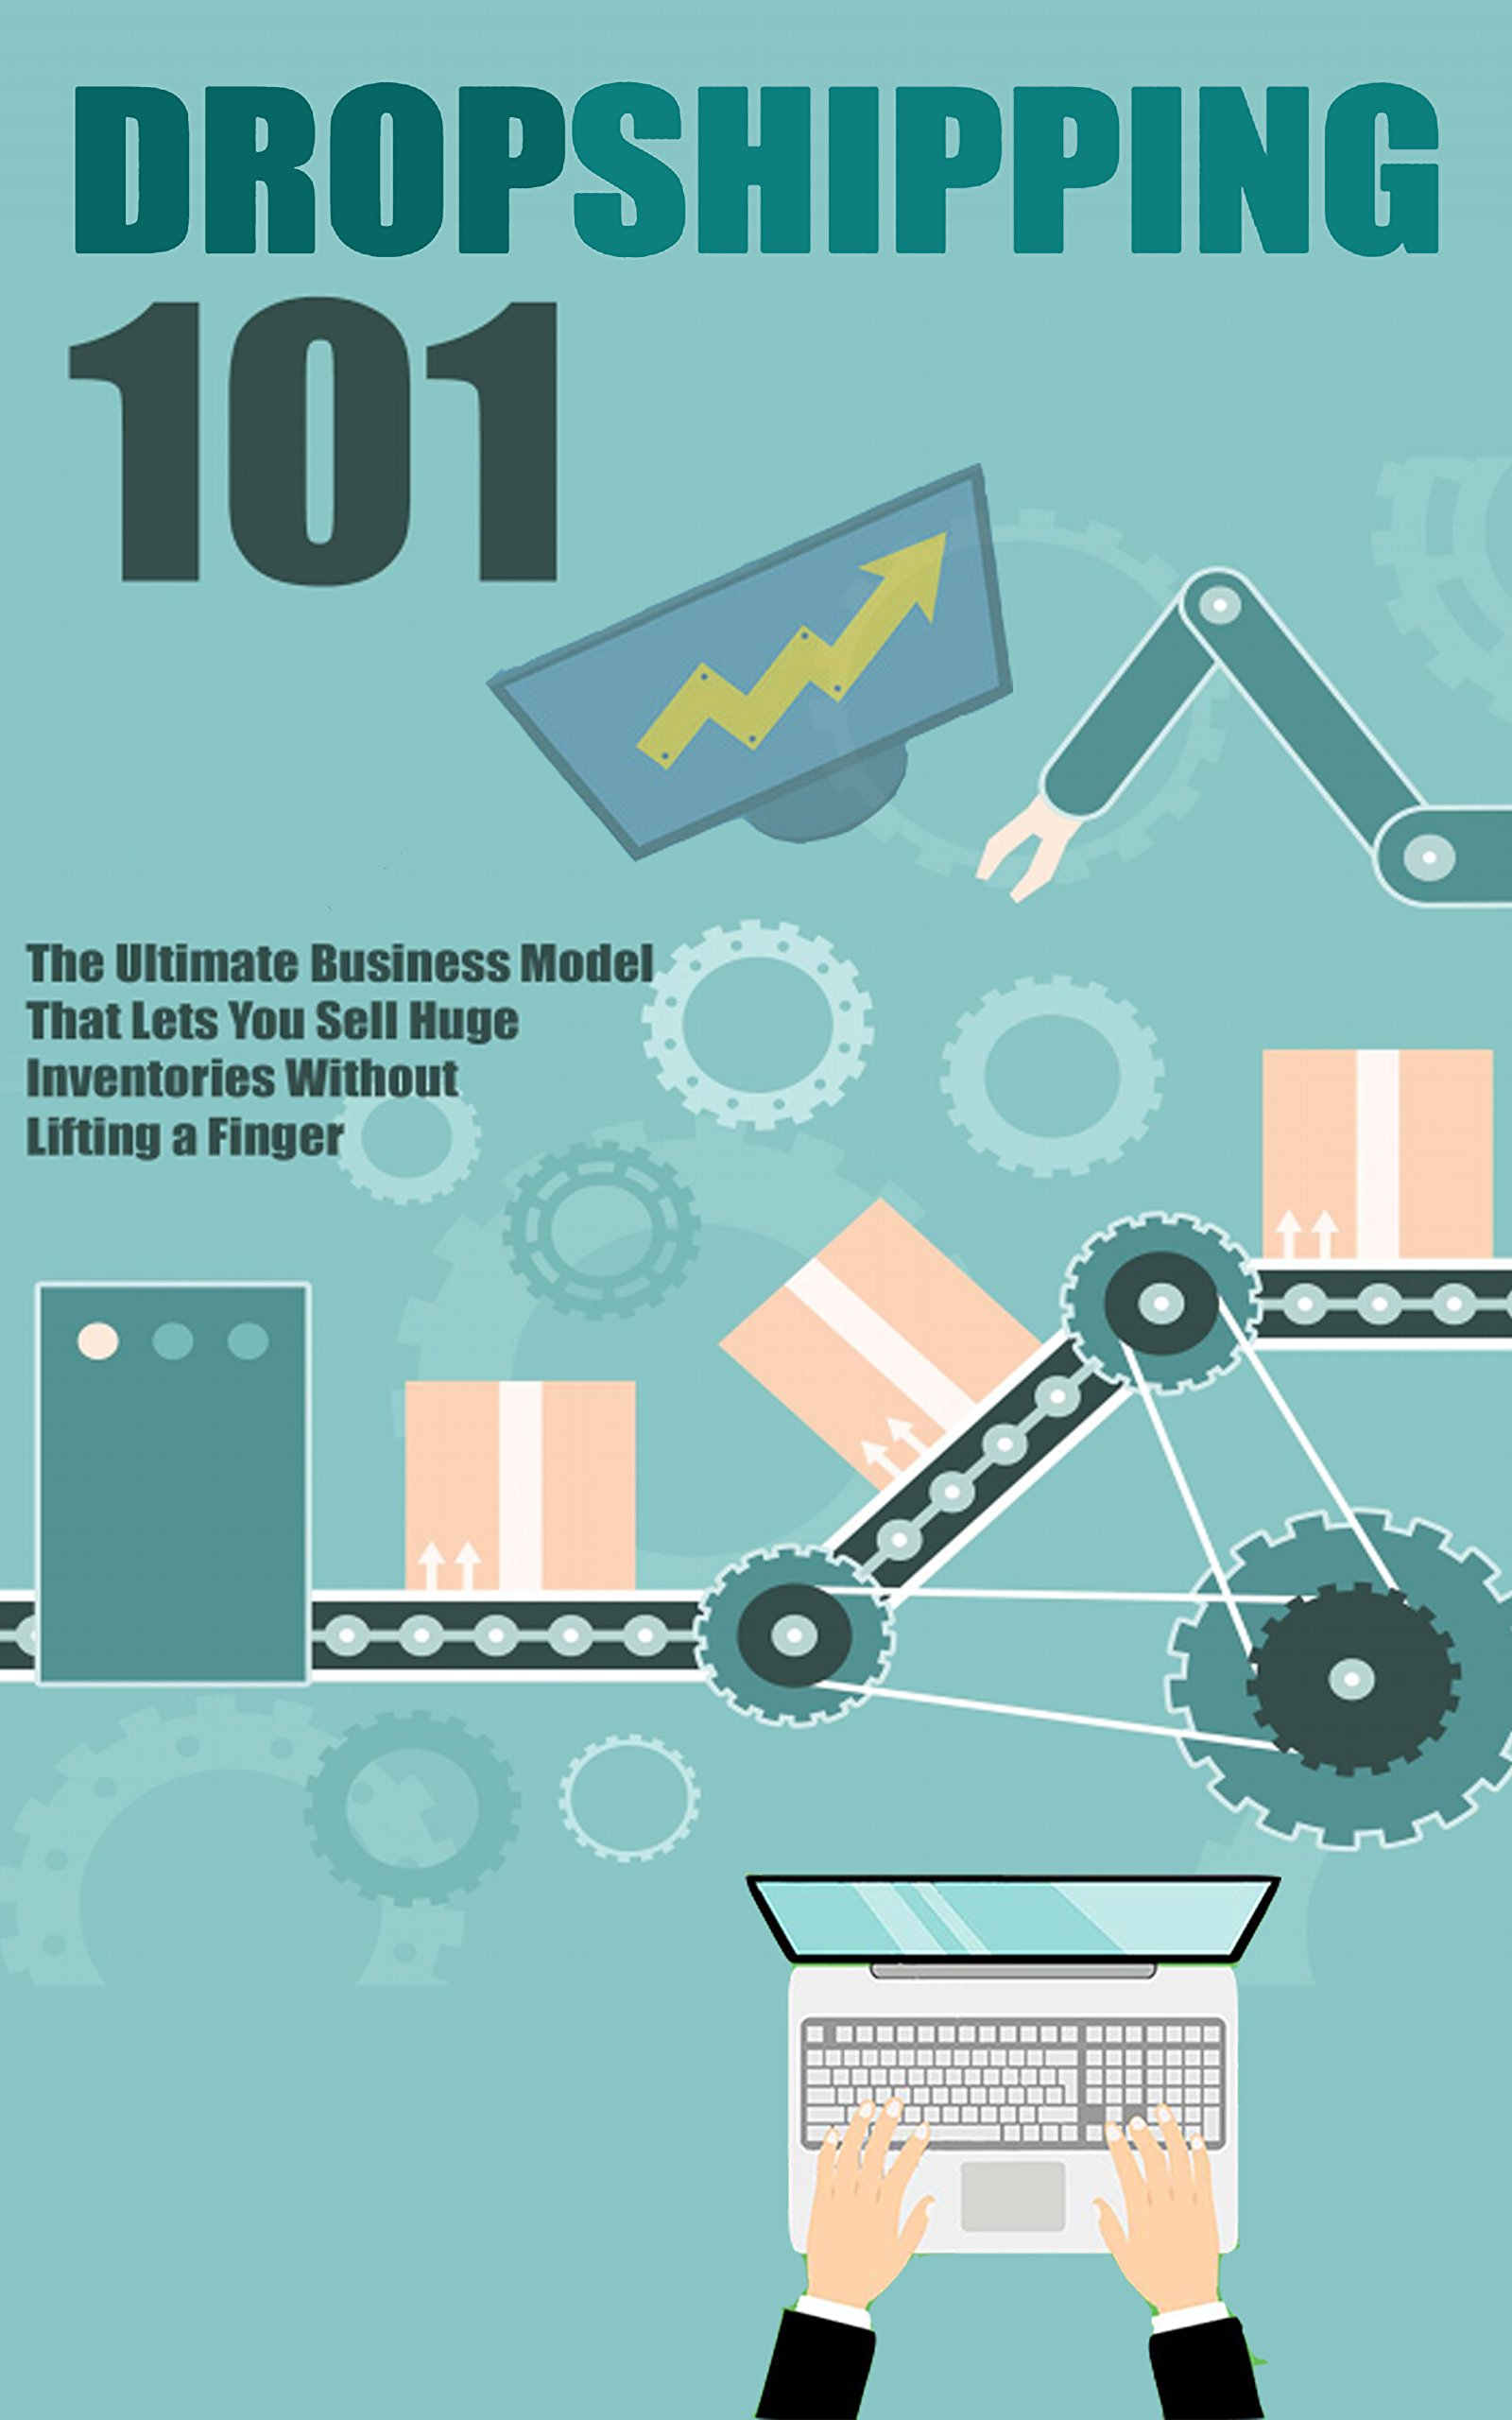 Dropshipping 101: Ultimate Guide to Dropshipping: The Ultimate Business Model That Lets You Sell Huge Inventories Without Lifting a Finger